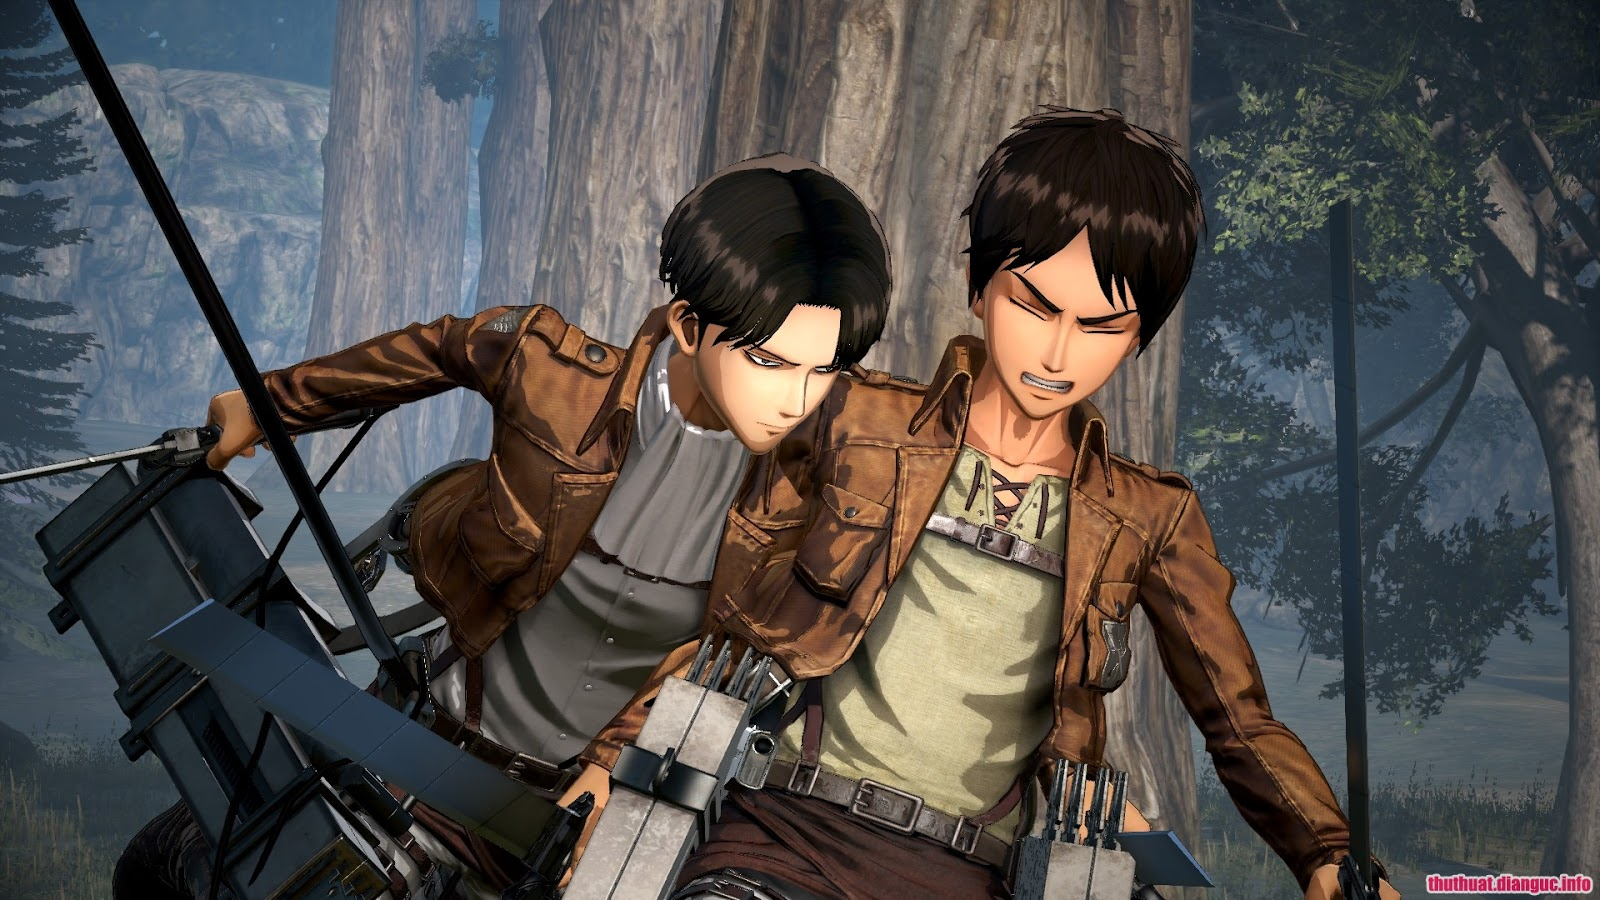 Tải game Attack on Titan 2 miễn phí, Attack on Titan 2 FSHARE 4SHARE DOWNLOAD FULL CRACK h, Attack on Titan 2 , Attack on Titan 2 free download,